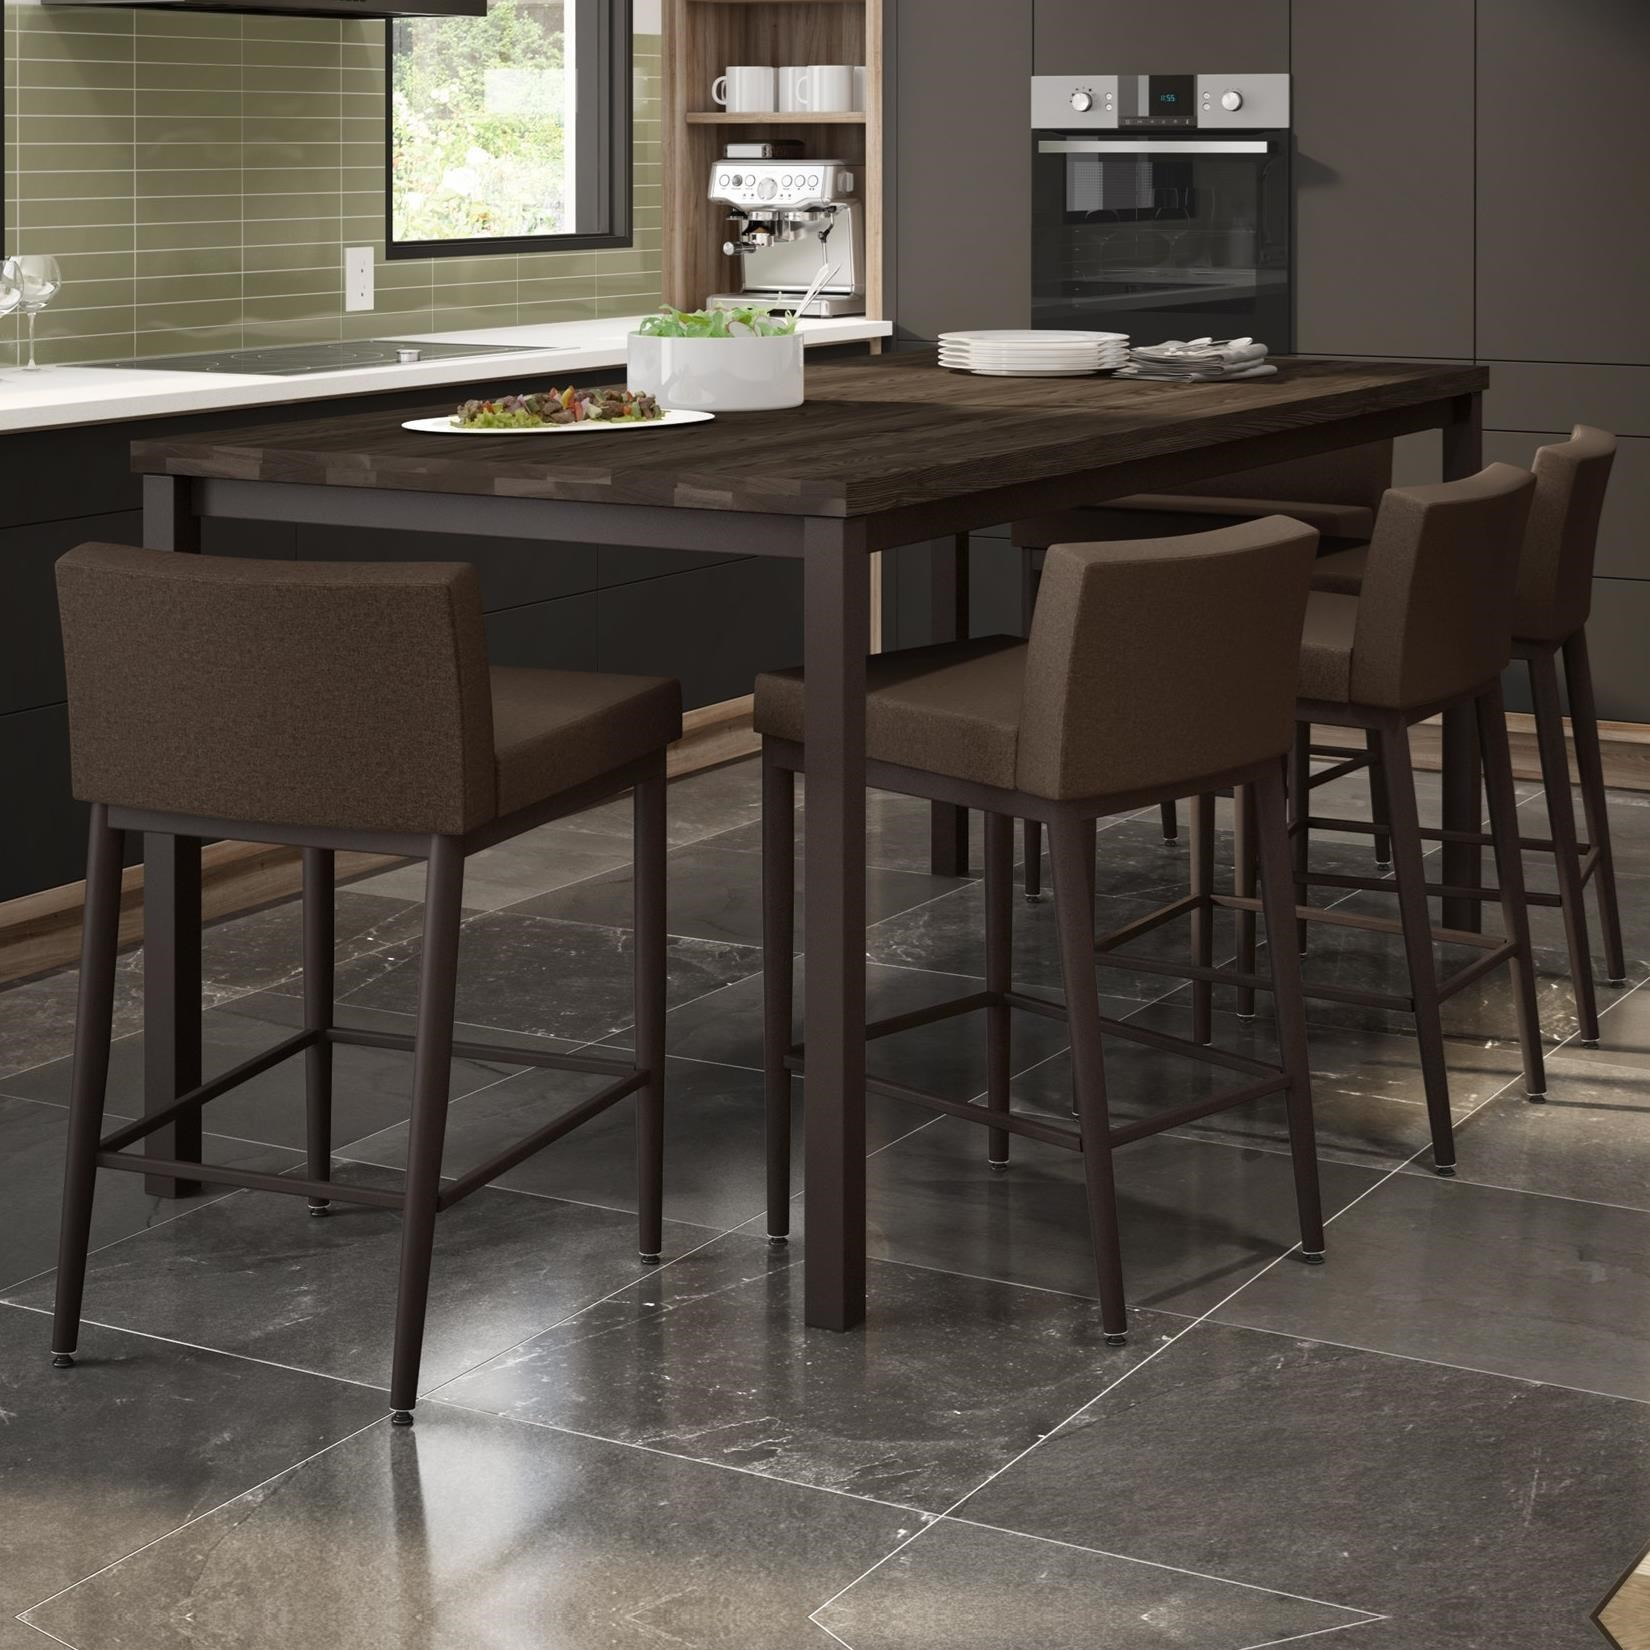 Urban Nicholson Counter Table Set by Amisco at Rooms and Rest